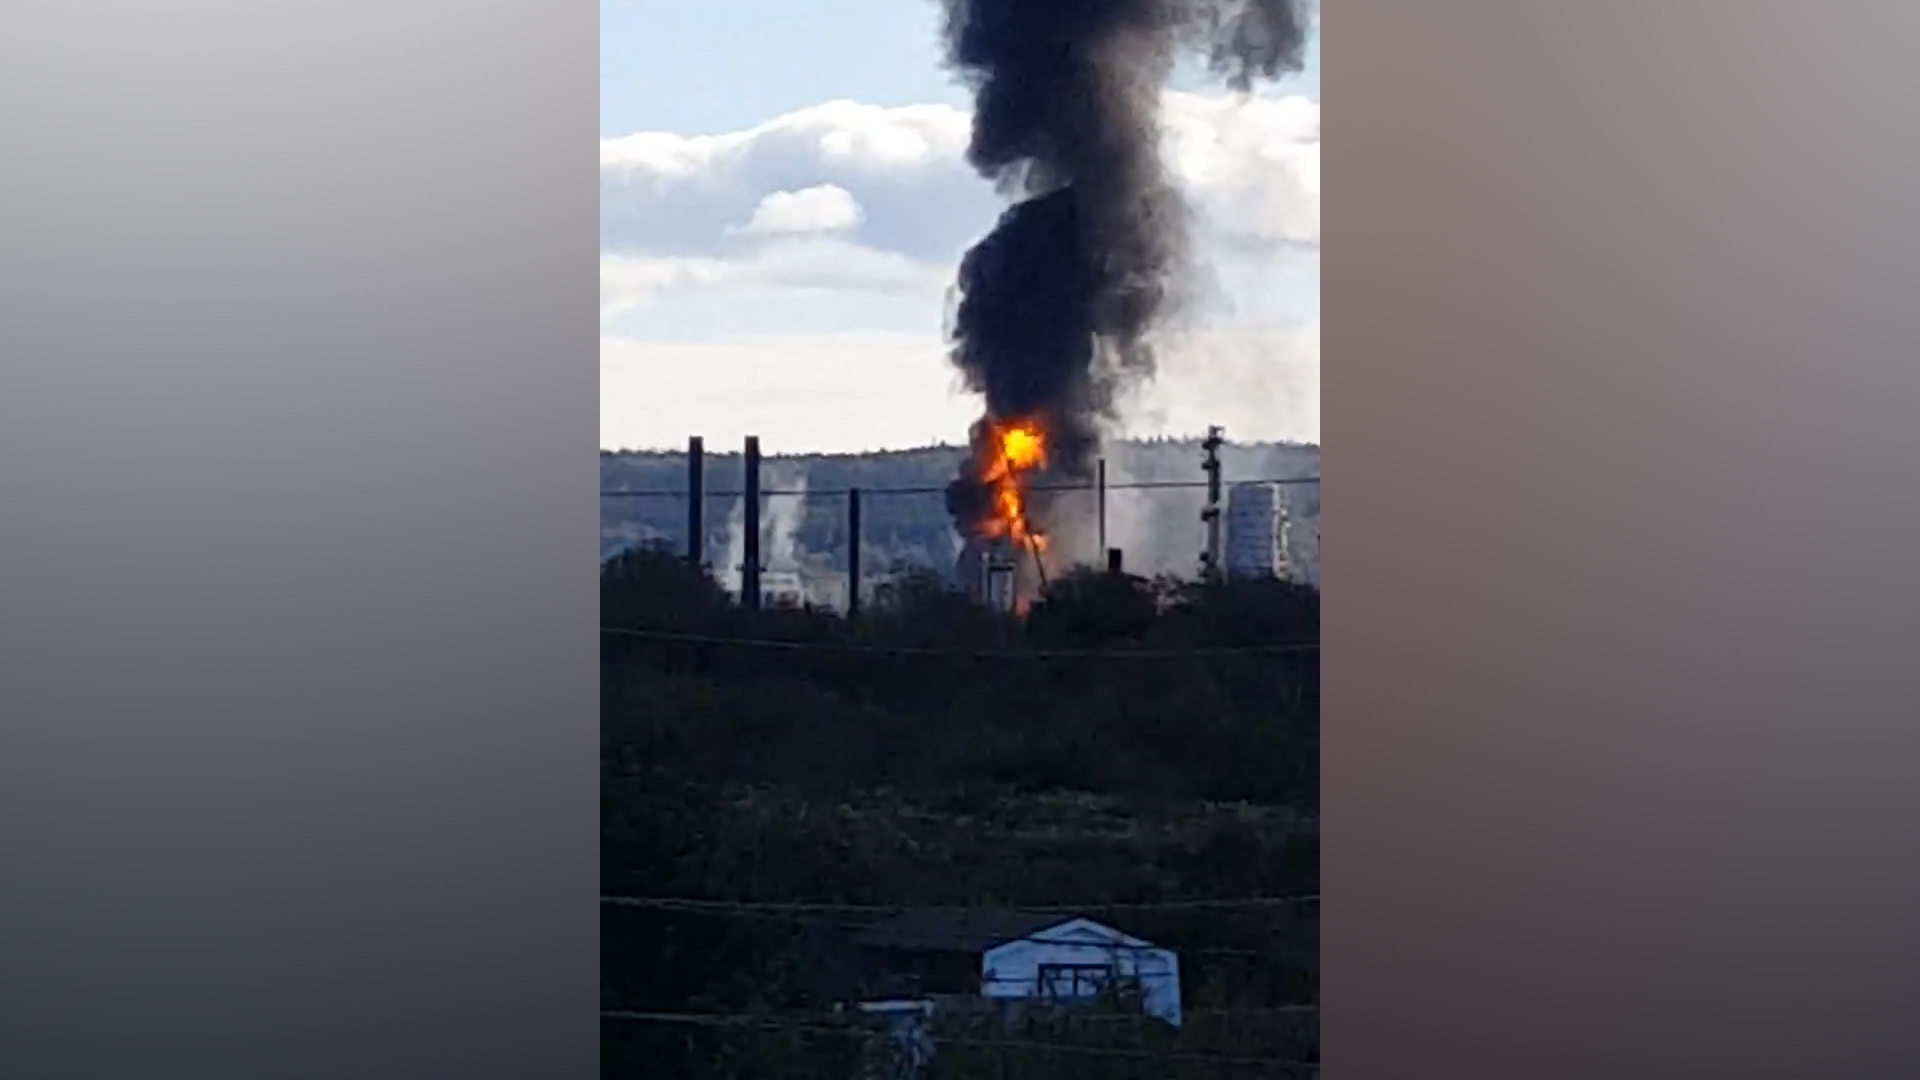 Reported explosion at oil refinery in Saint John, NB